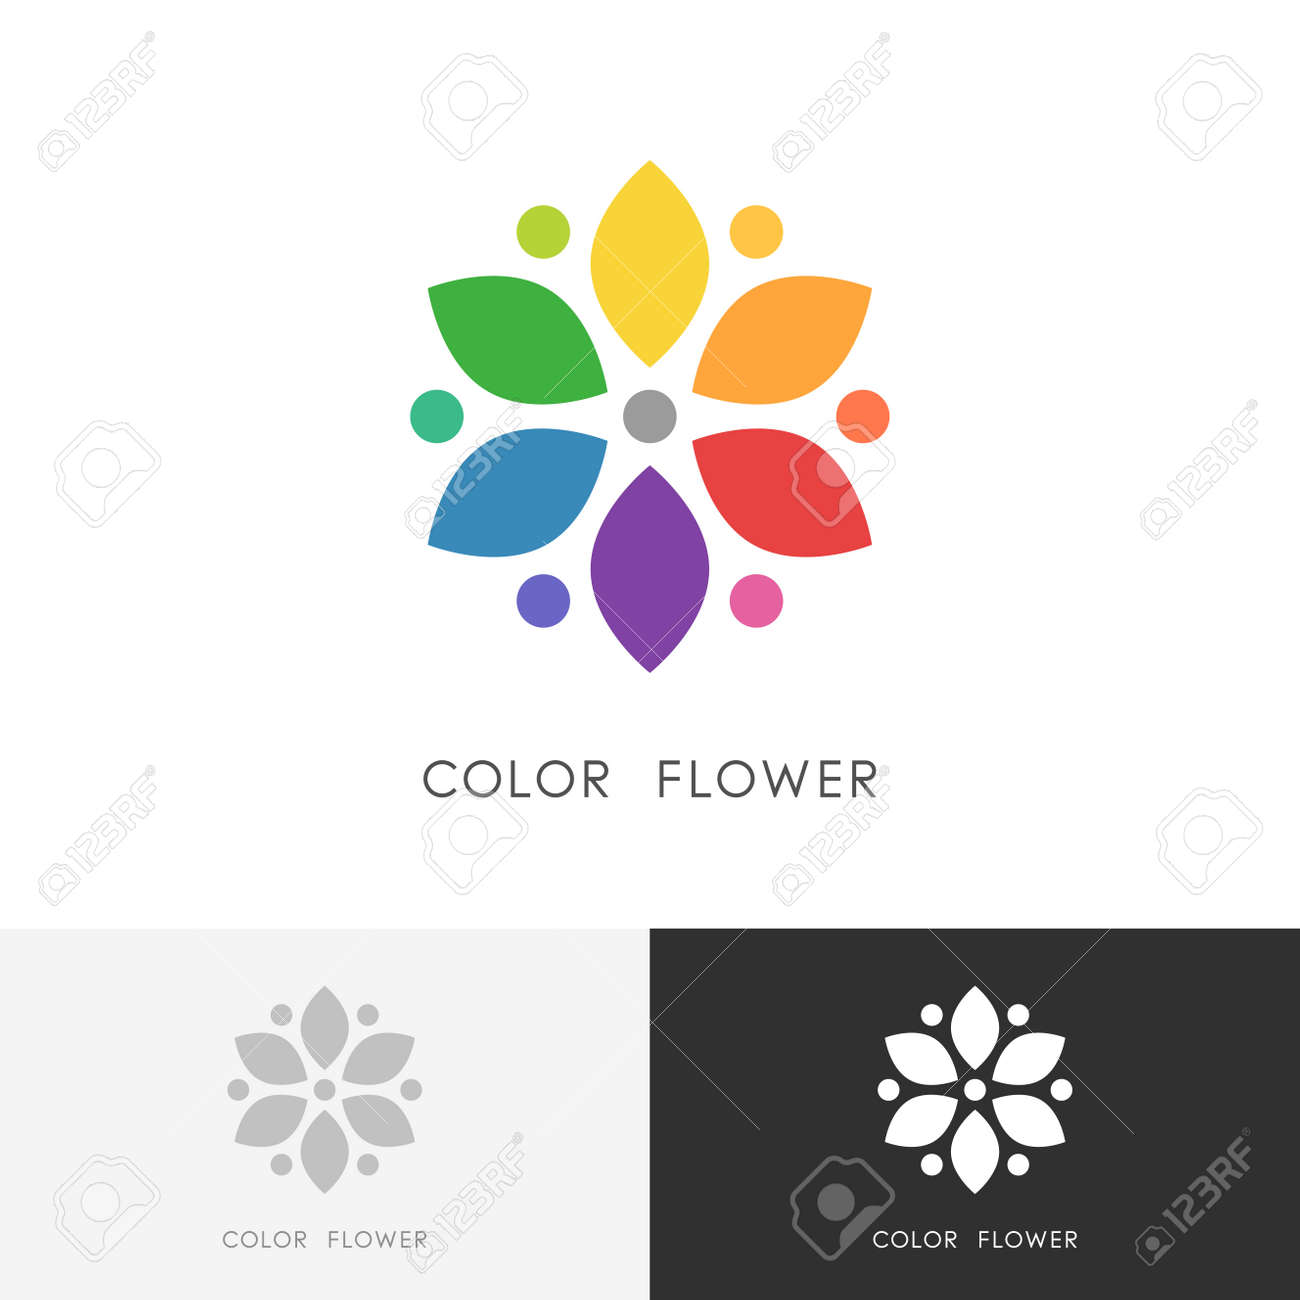 Color Flower Bright Colored Blossom With Petals Or Color Wheel